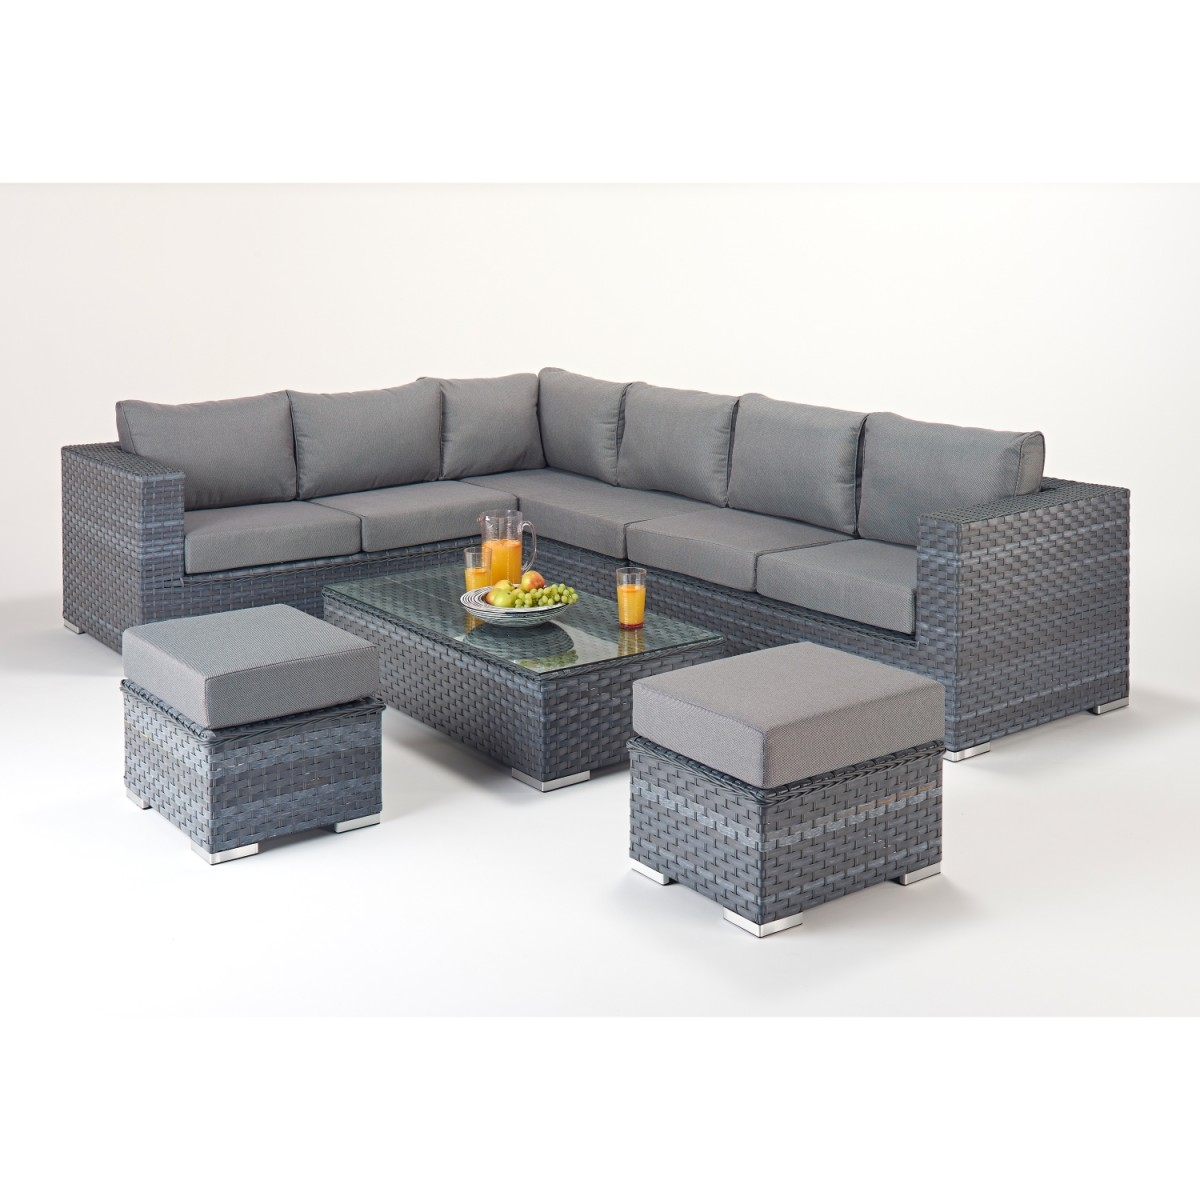 Rattan Corner Sofa Reviews Rattan Set Platinum Large Corner Sofa Set Wgf 502 Left Hand